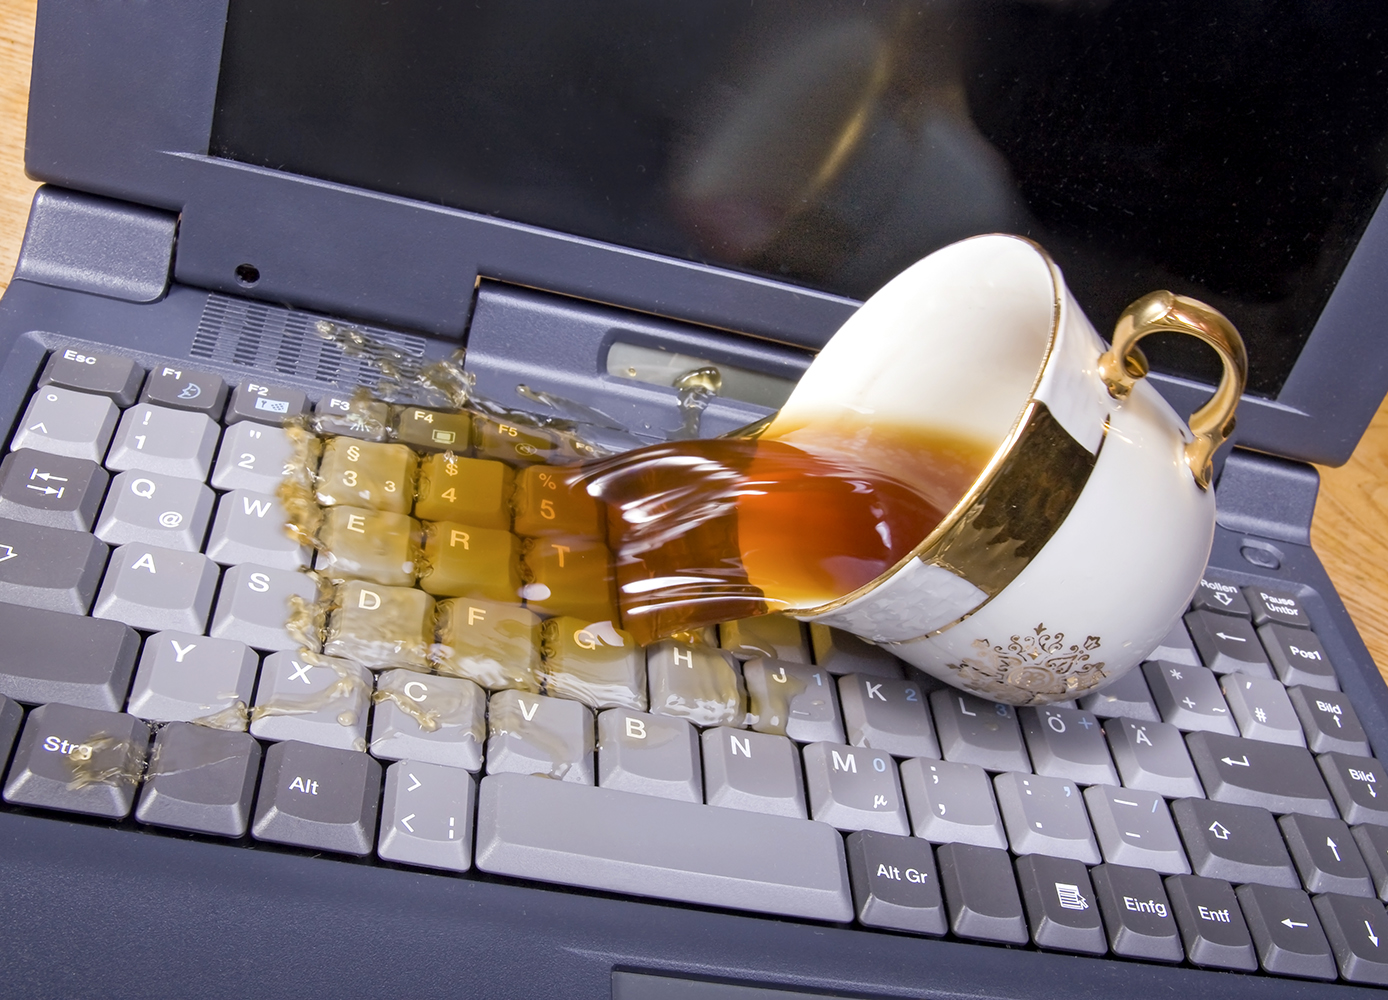 DID YOU GET WATER ON YOUR LAPTOP? CHECK HOW TO SAVE IT IN TIME